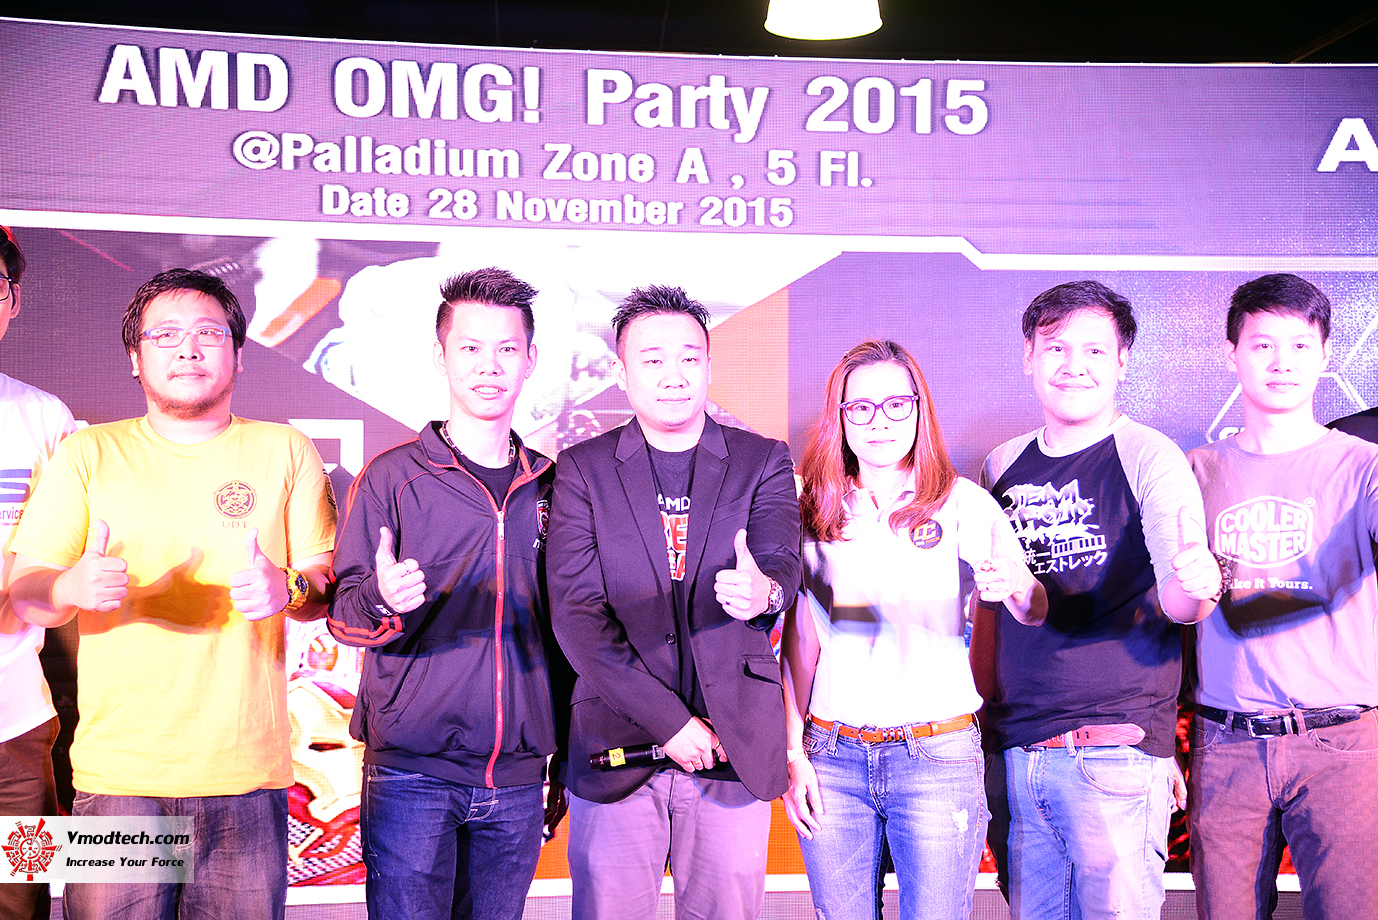 dsc 6588 AMD OMG! Party 2015 (AMD Overclock Modding Gaming Party 2015)